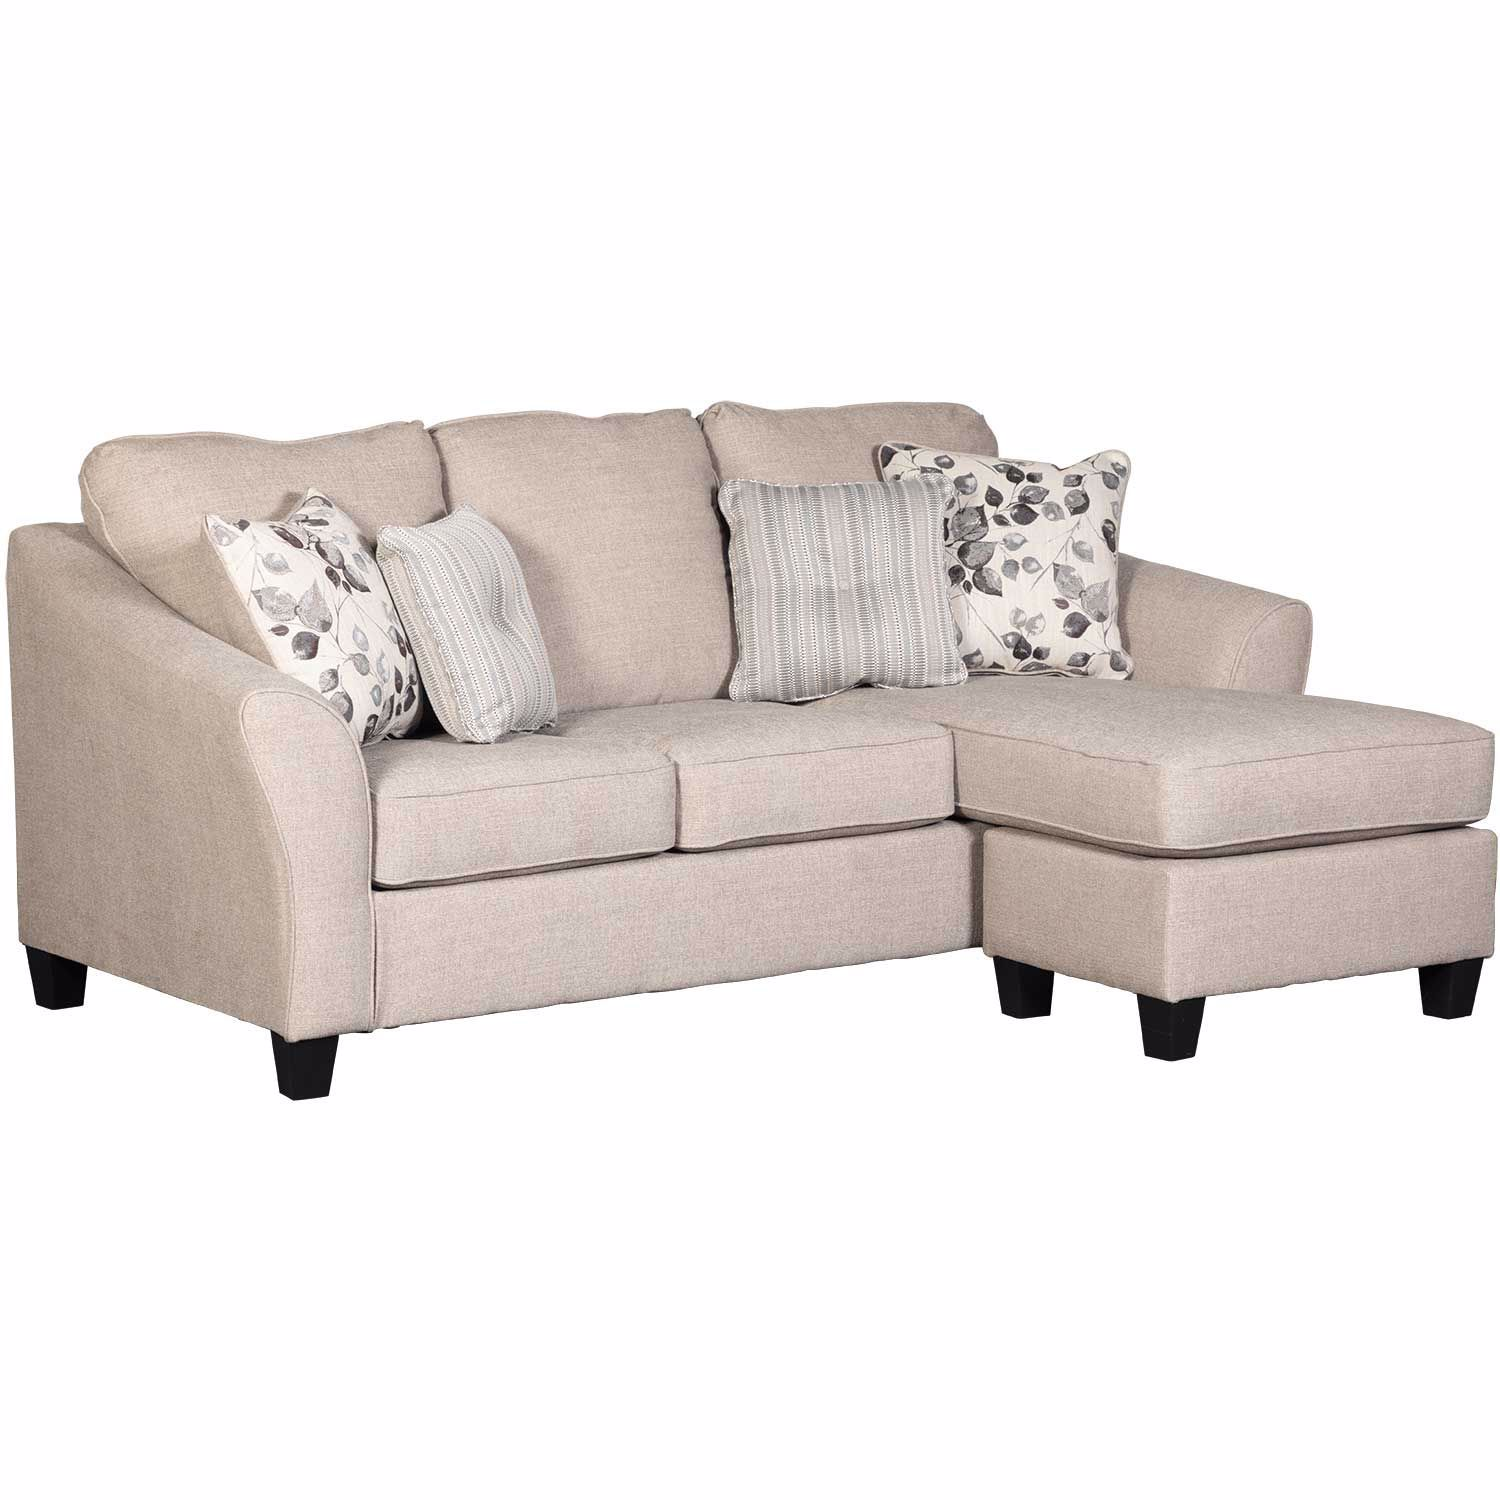 Abney Driftwood Reversible Sofa Chaise 4970118 Ashley